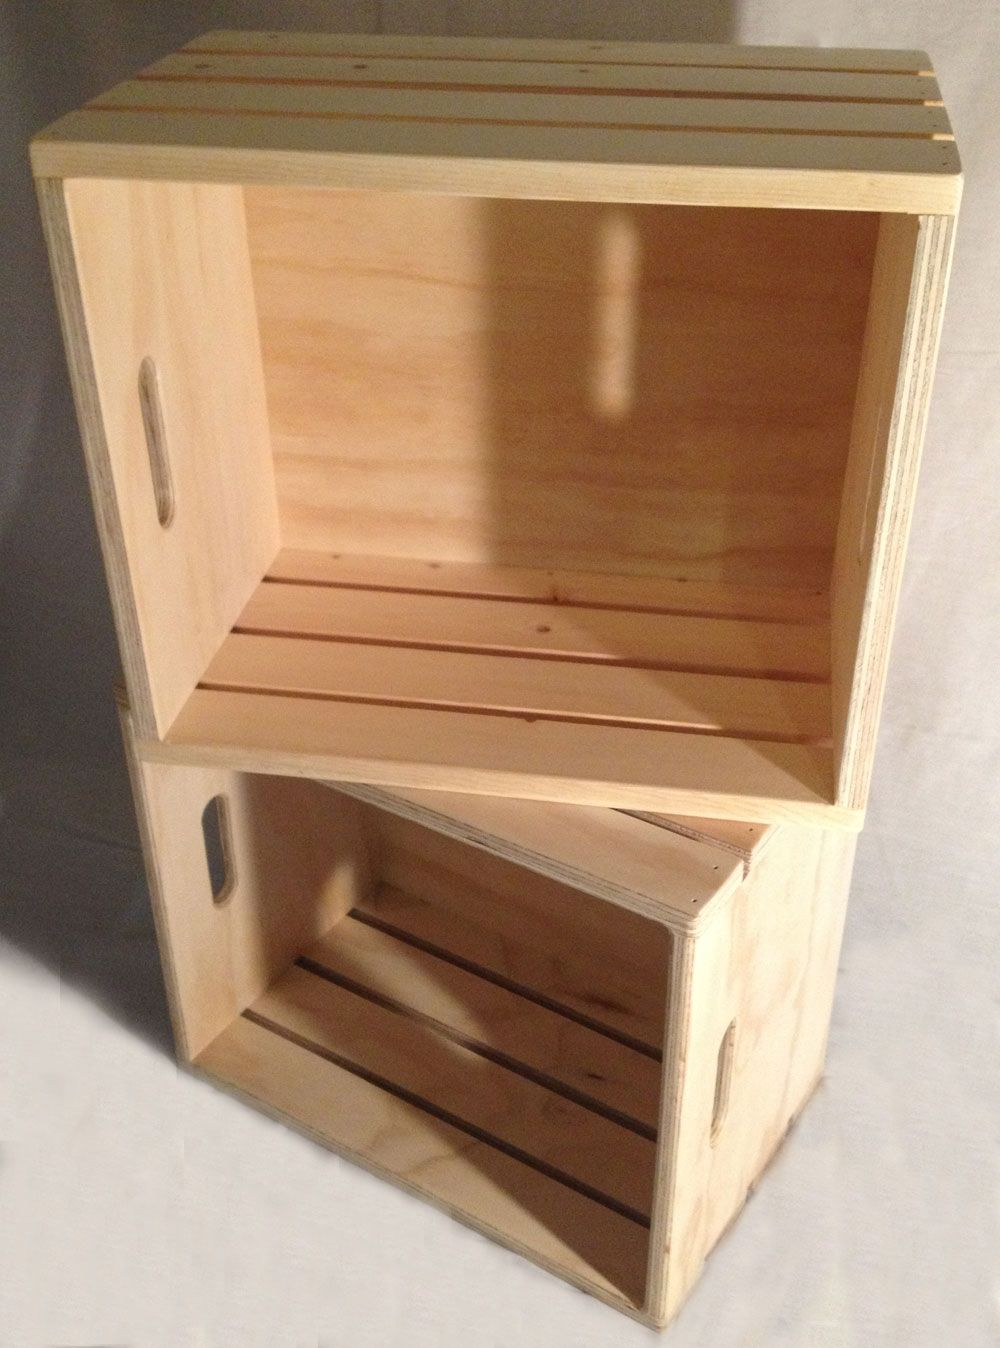 Sturdy Durable Display Crates Made In The Usa Stackable Rustic Wood Crate Www Jbrothersandcompany Com Gift Shop Displays Retail Fixtures Sturdy